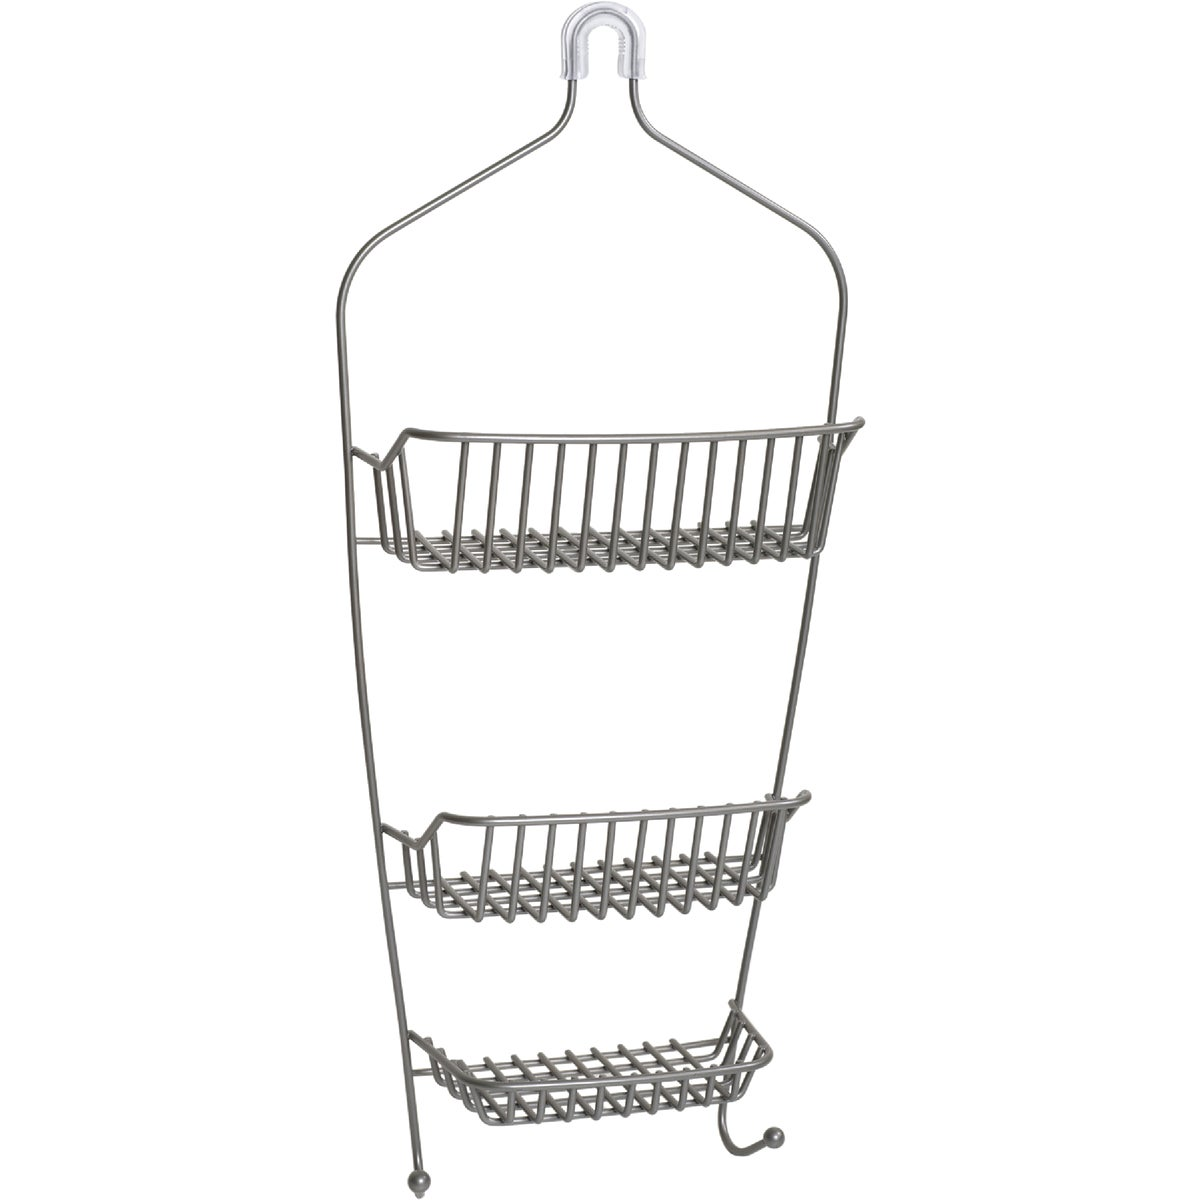 SN SHOWER HEAD CADDY - 7706NN by Zenith Prod Corp